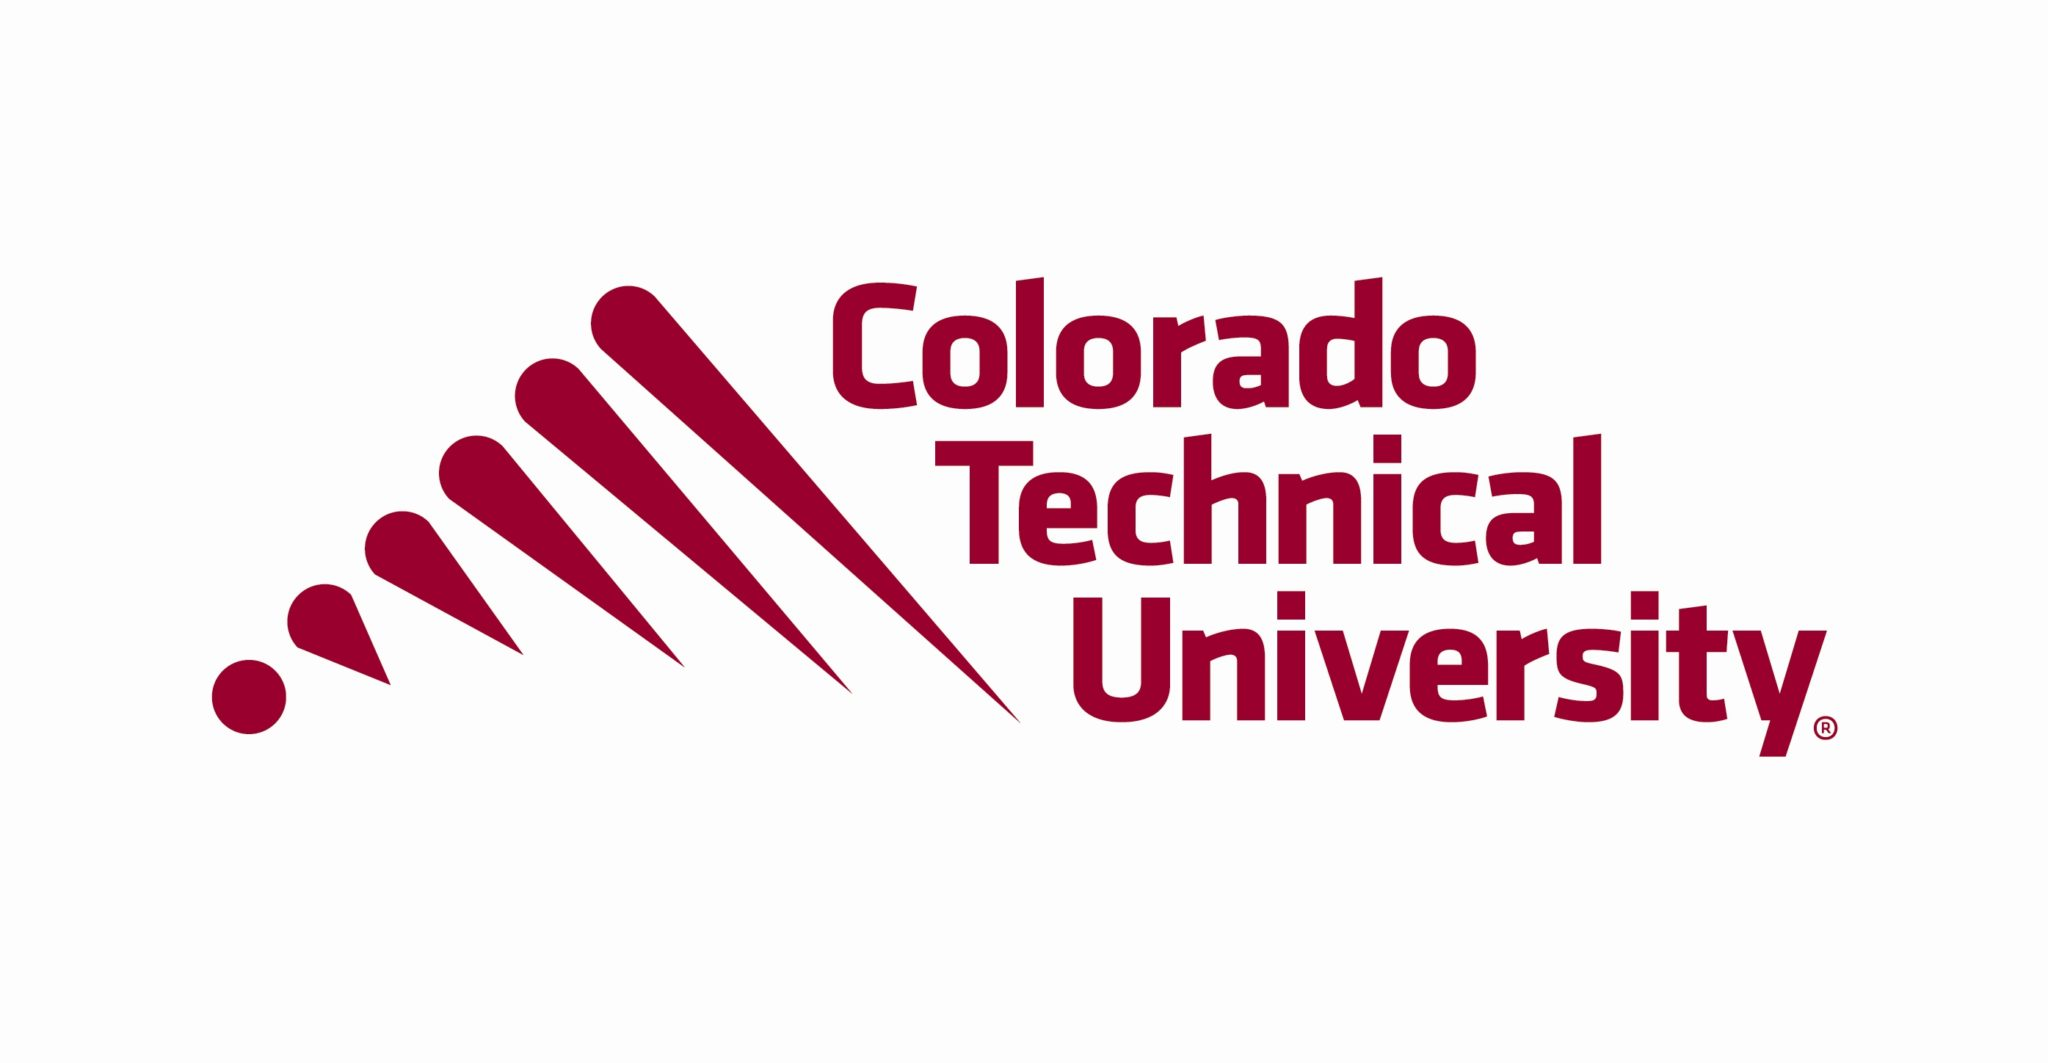 Colorado Technical University Bachelor of Science in Computer Science - Data Science